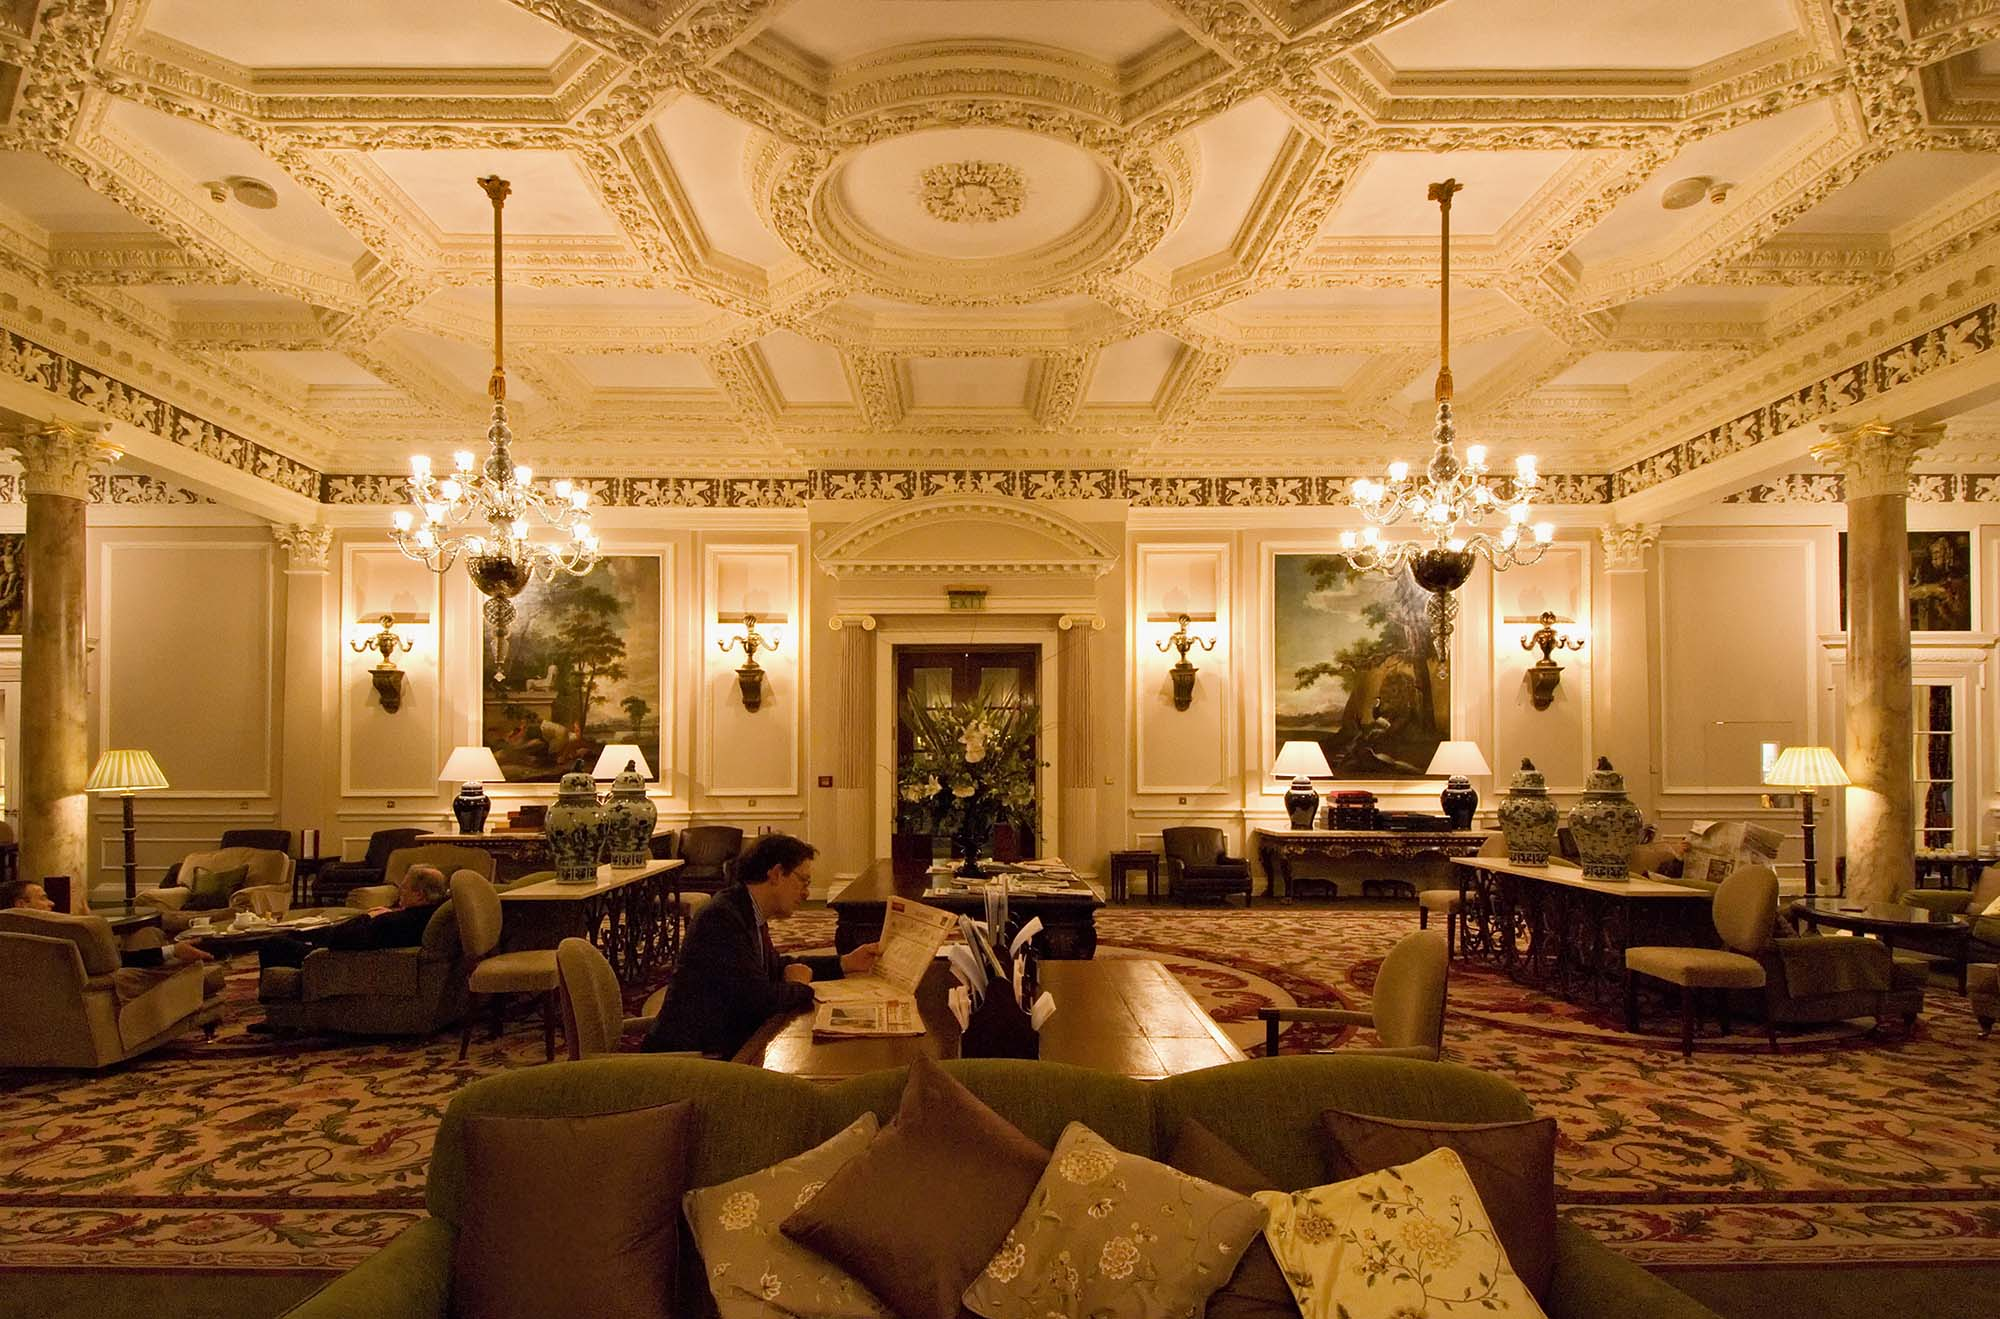 pall mall mature dating site Best of money: single, dating and paying a very high price my prospective matchmaker used the institute of directors' building in pall mall as her virtual office.